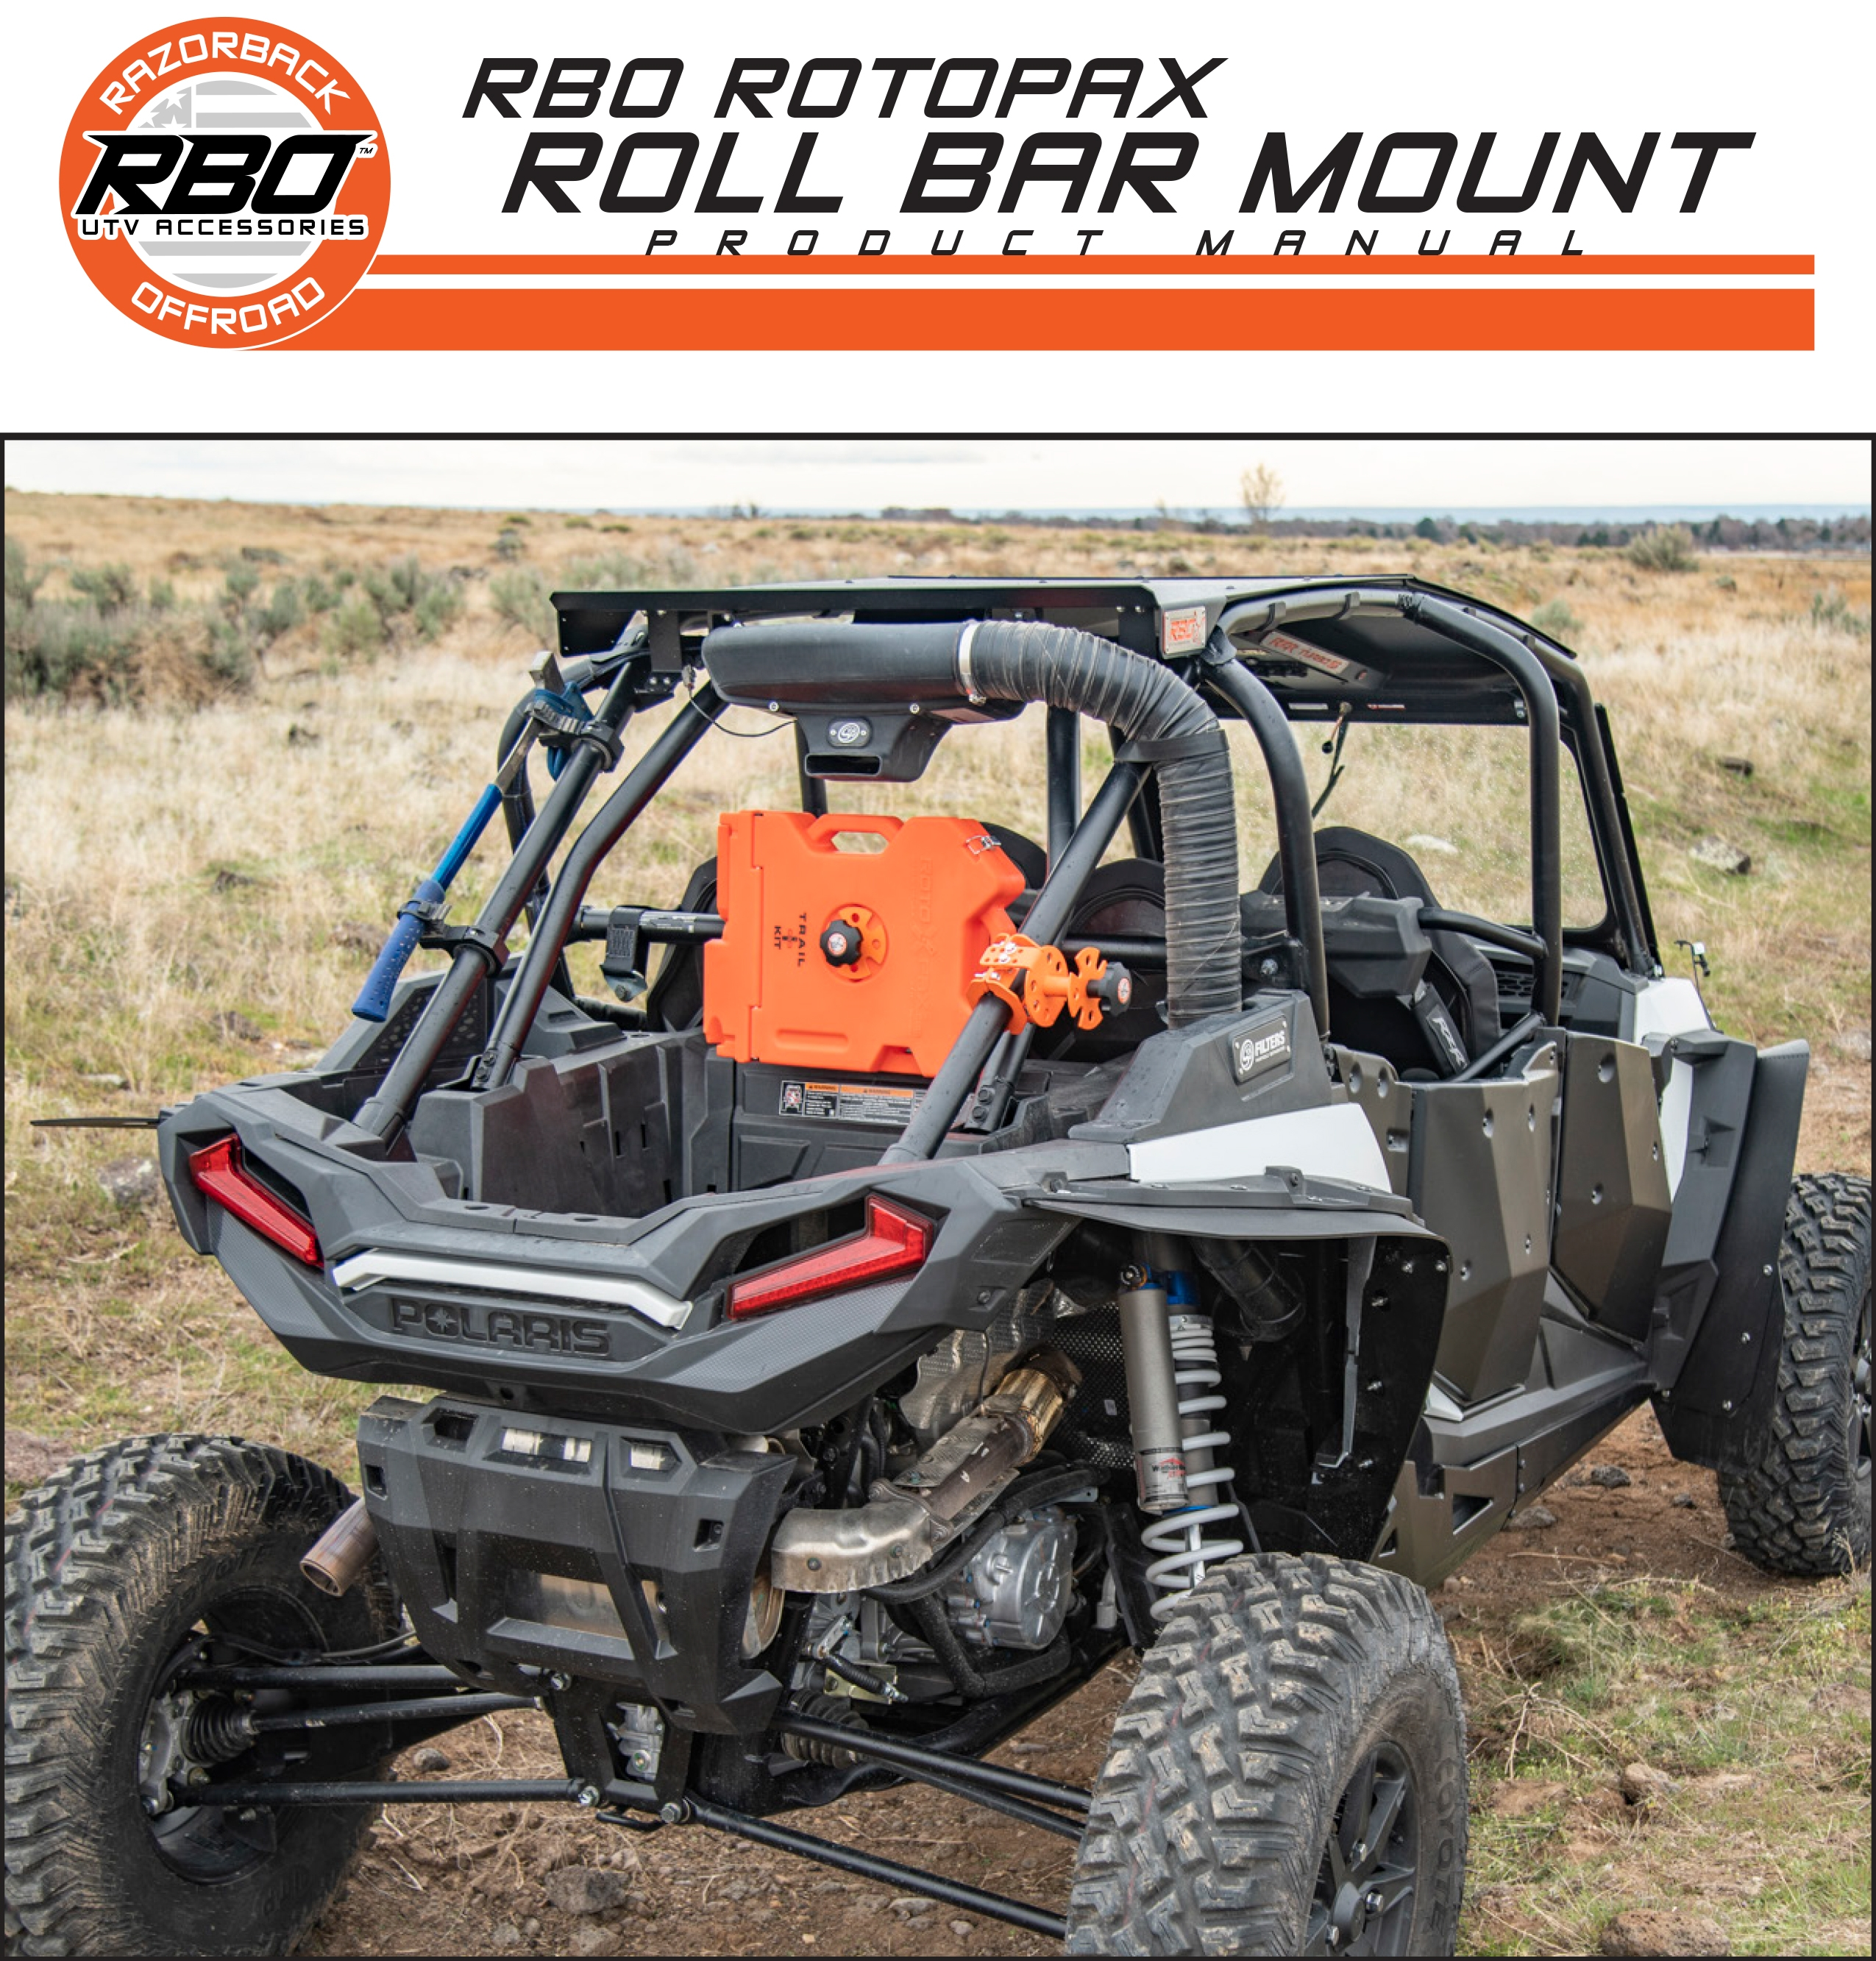 RBO Rotopax Roll Bar Mount Product Manual